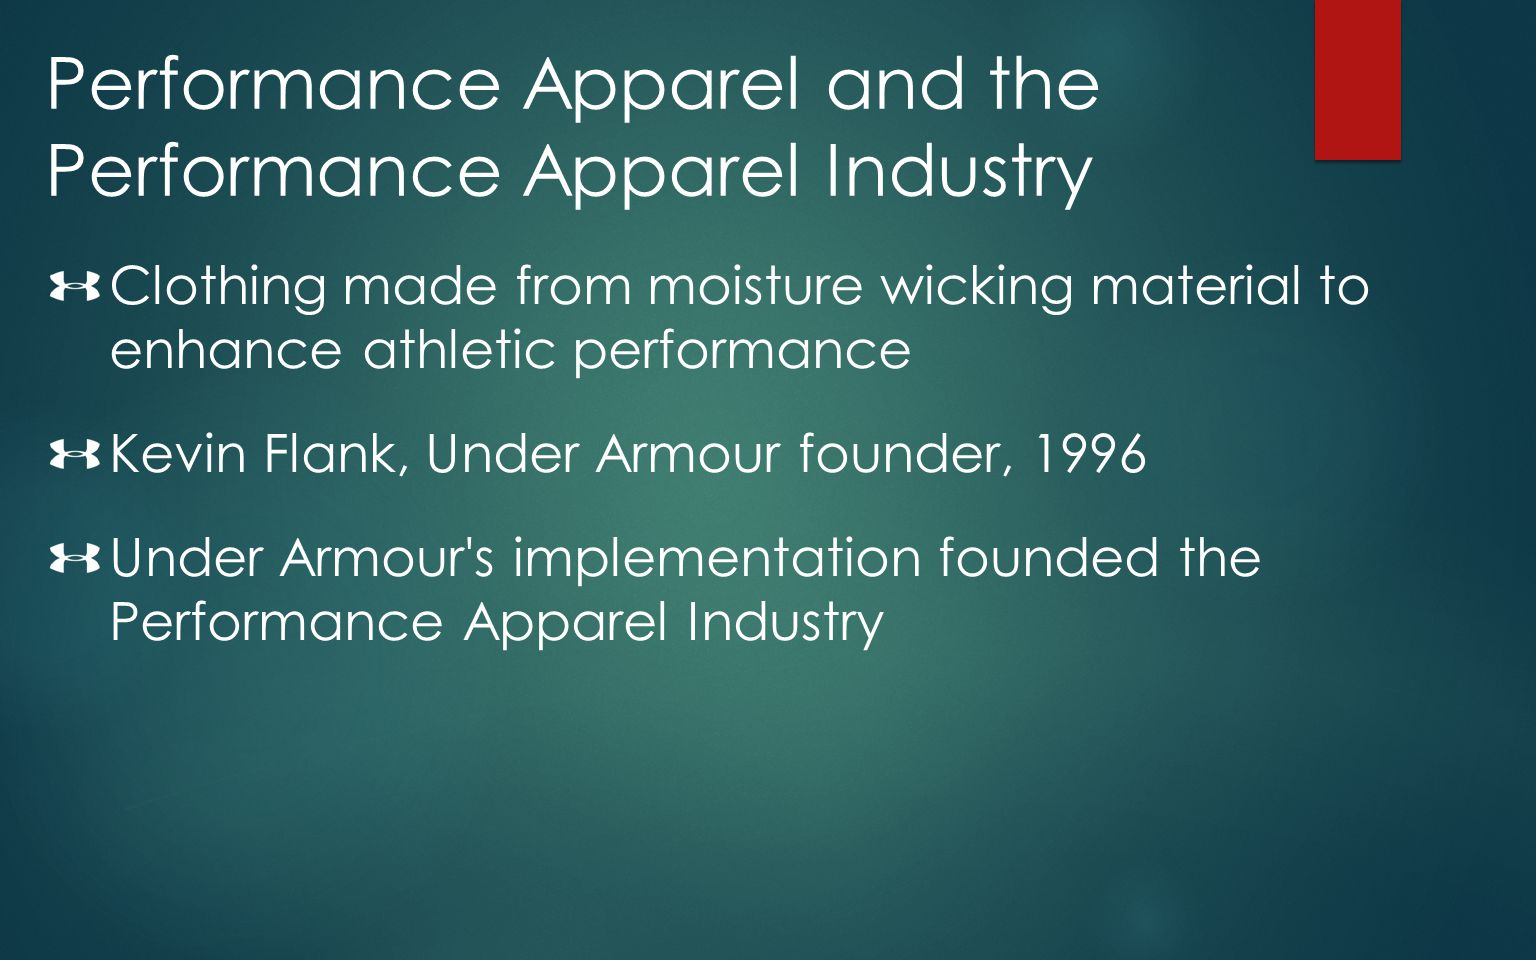 Performance Apparel and the Performance Apparel Industry